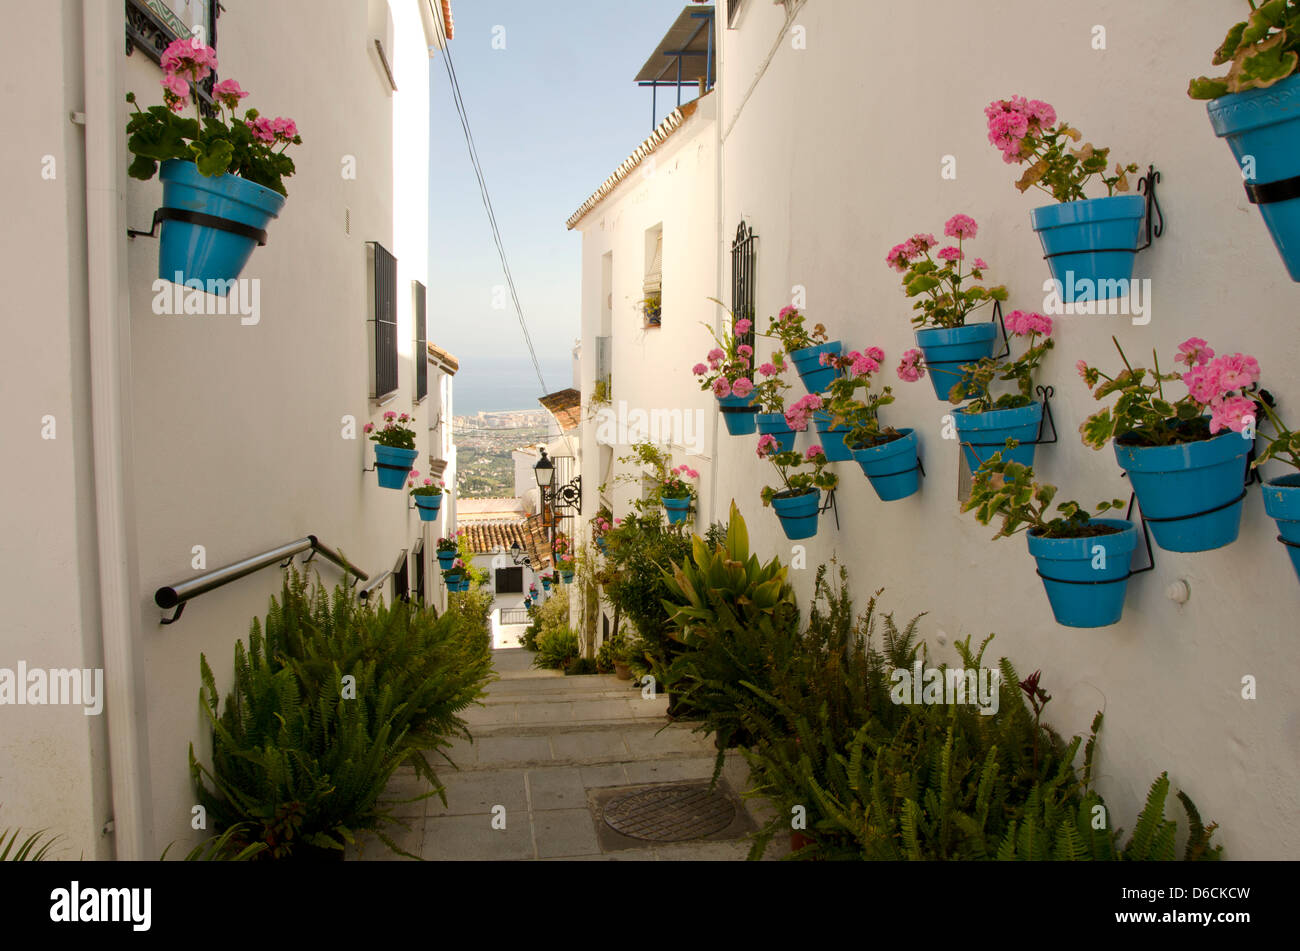 Hanging Flower Pots On The Wall In The White Village Of